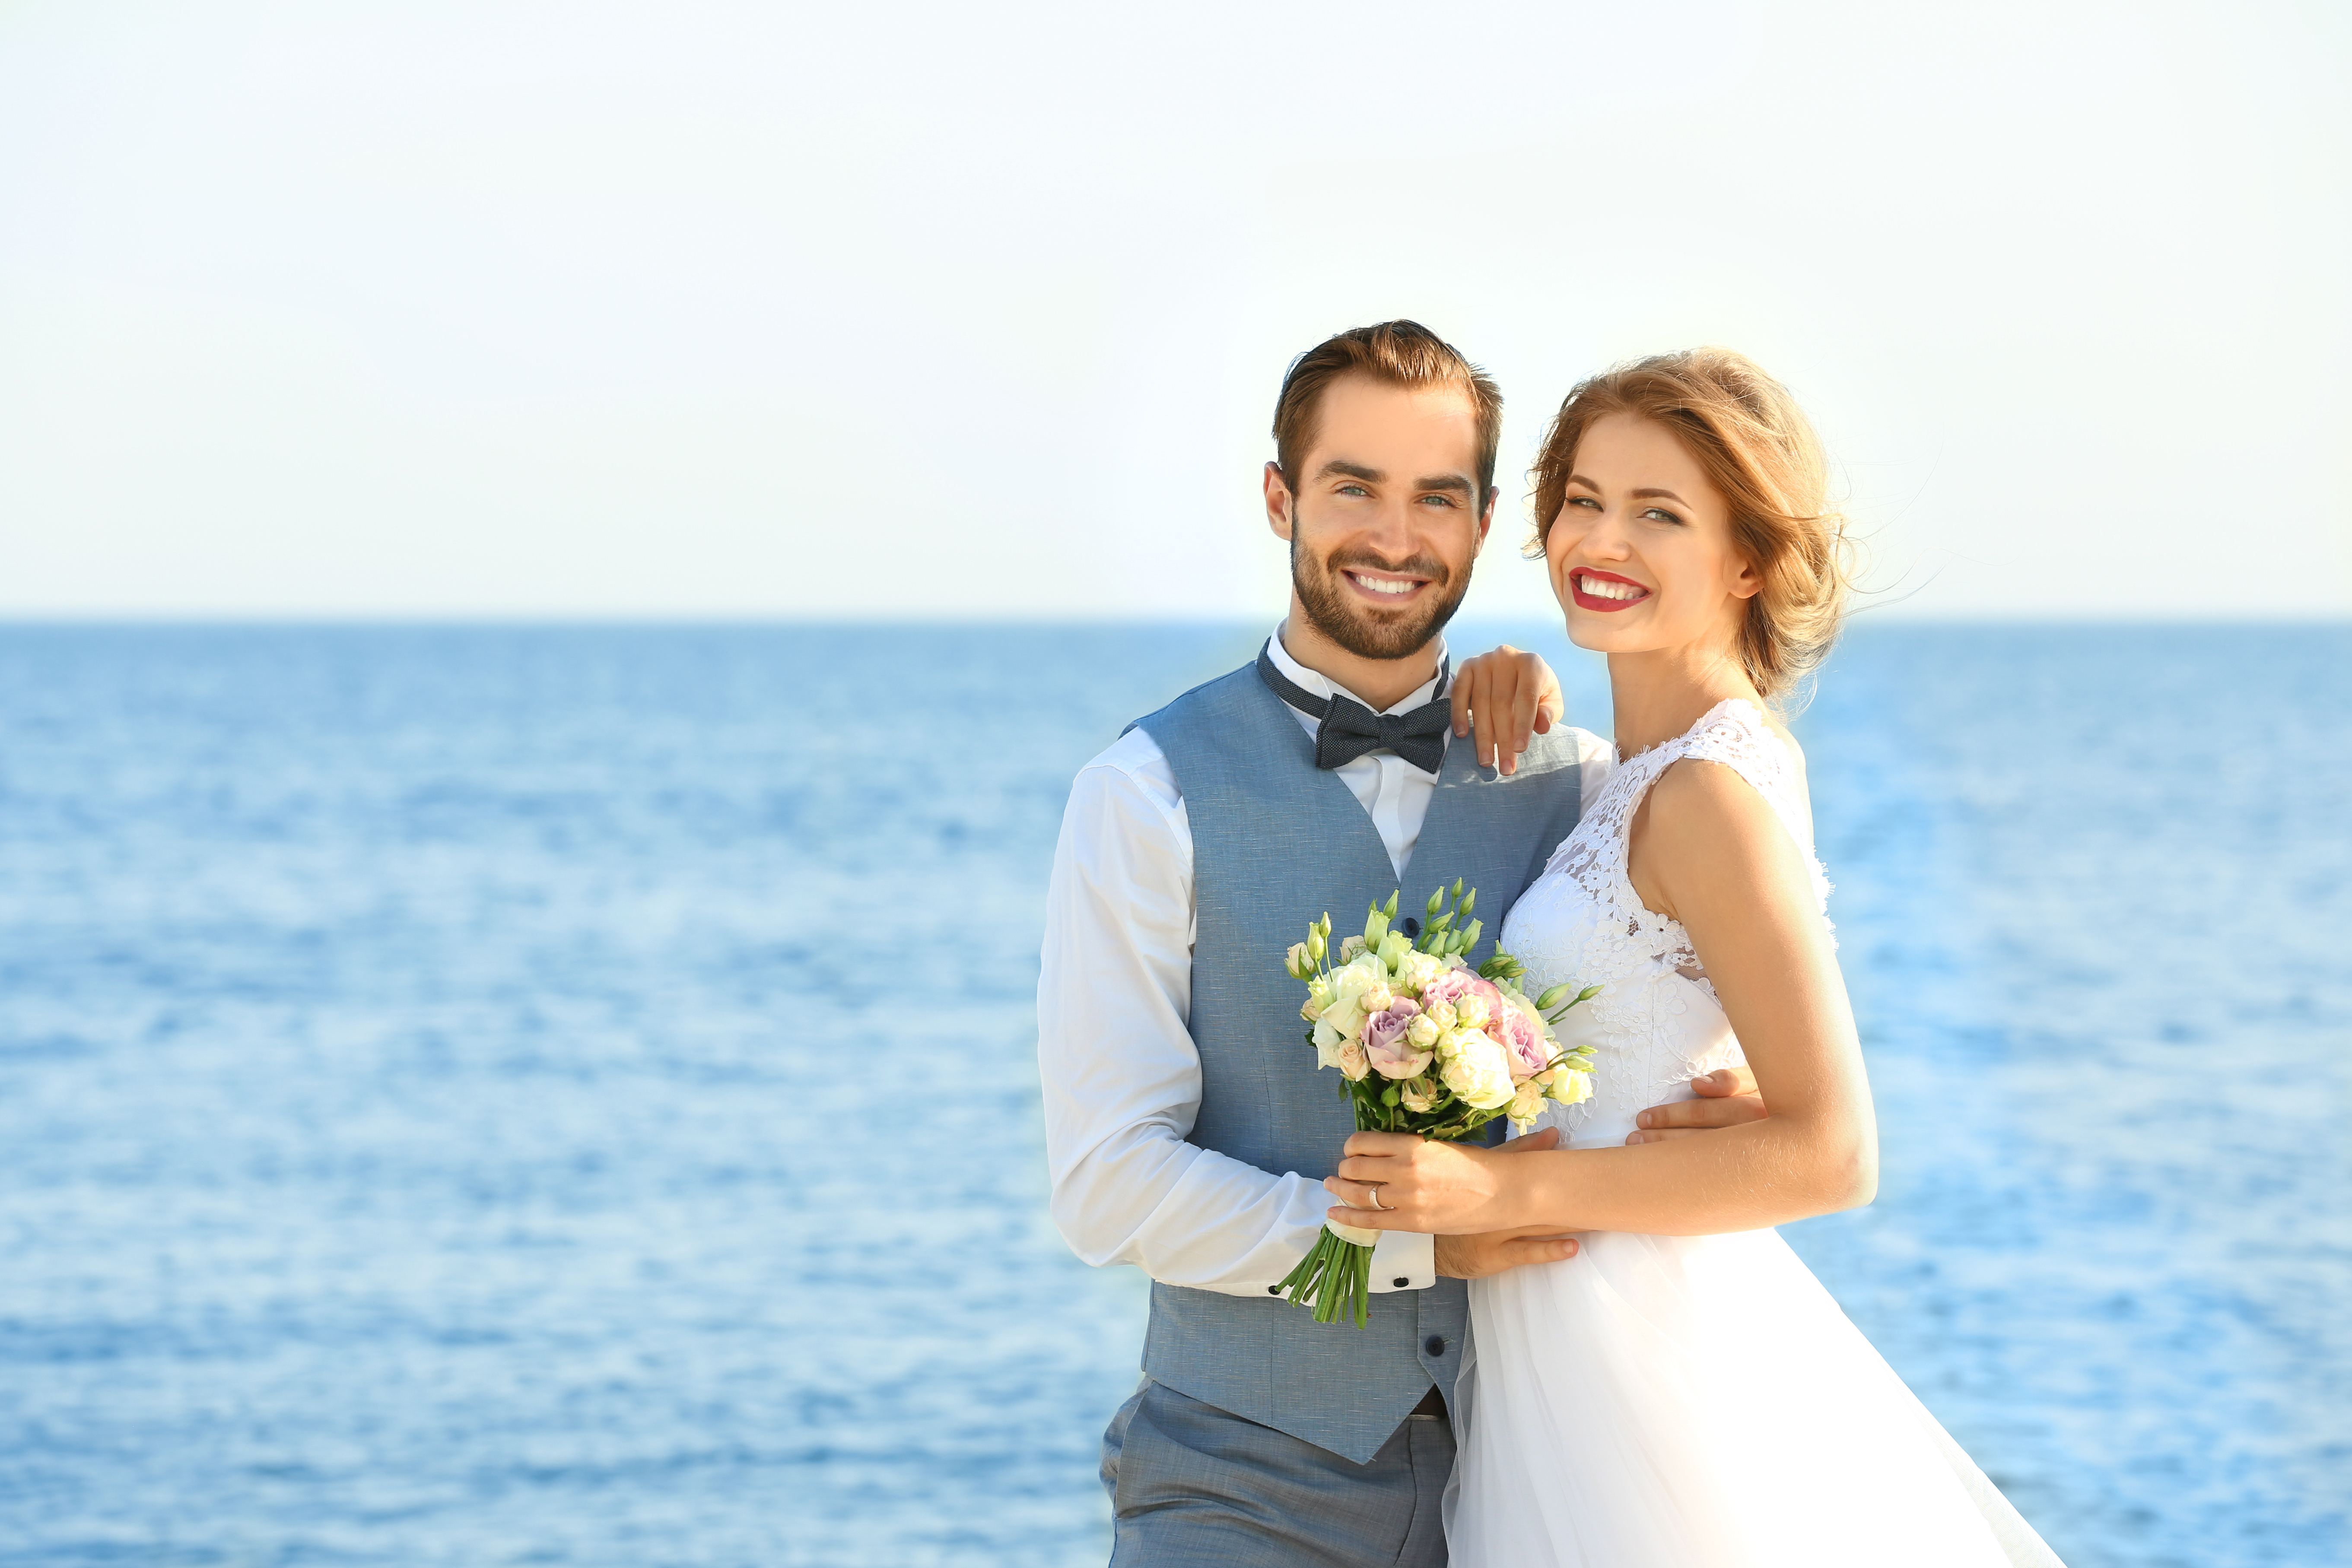 Find Your Soulmate Online—Find Out More About Marriage Agency